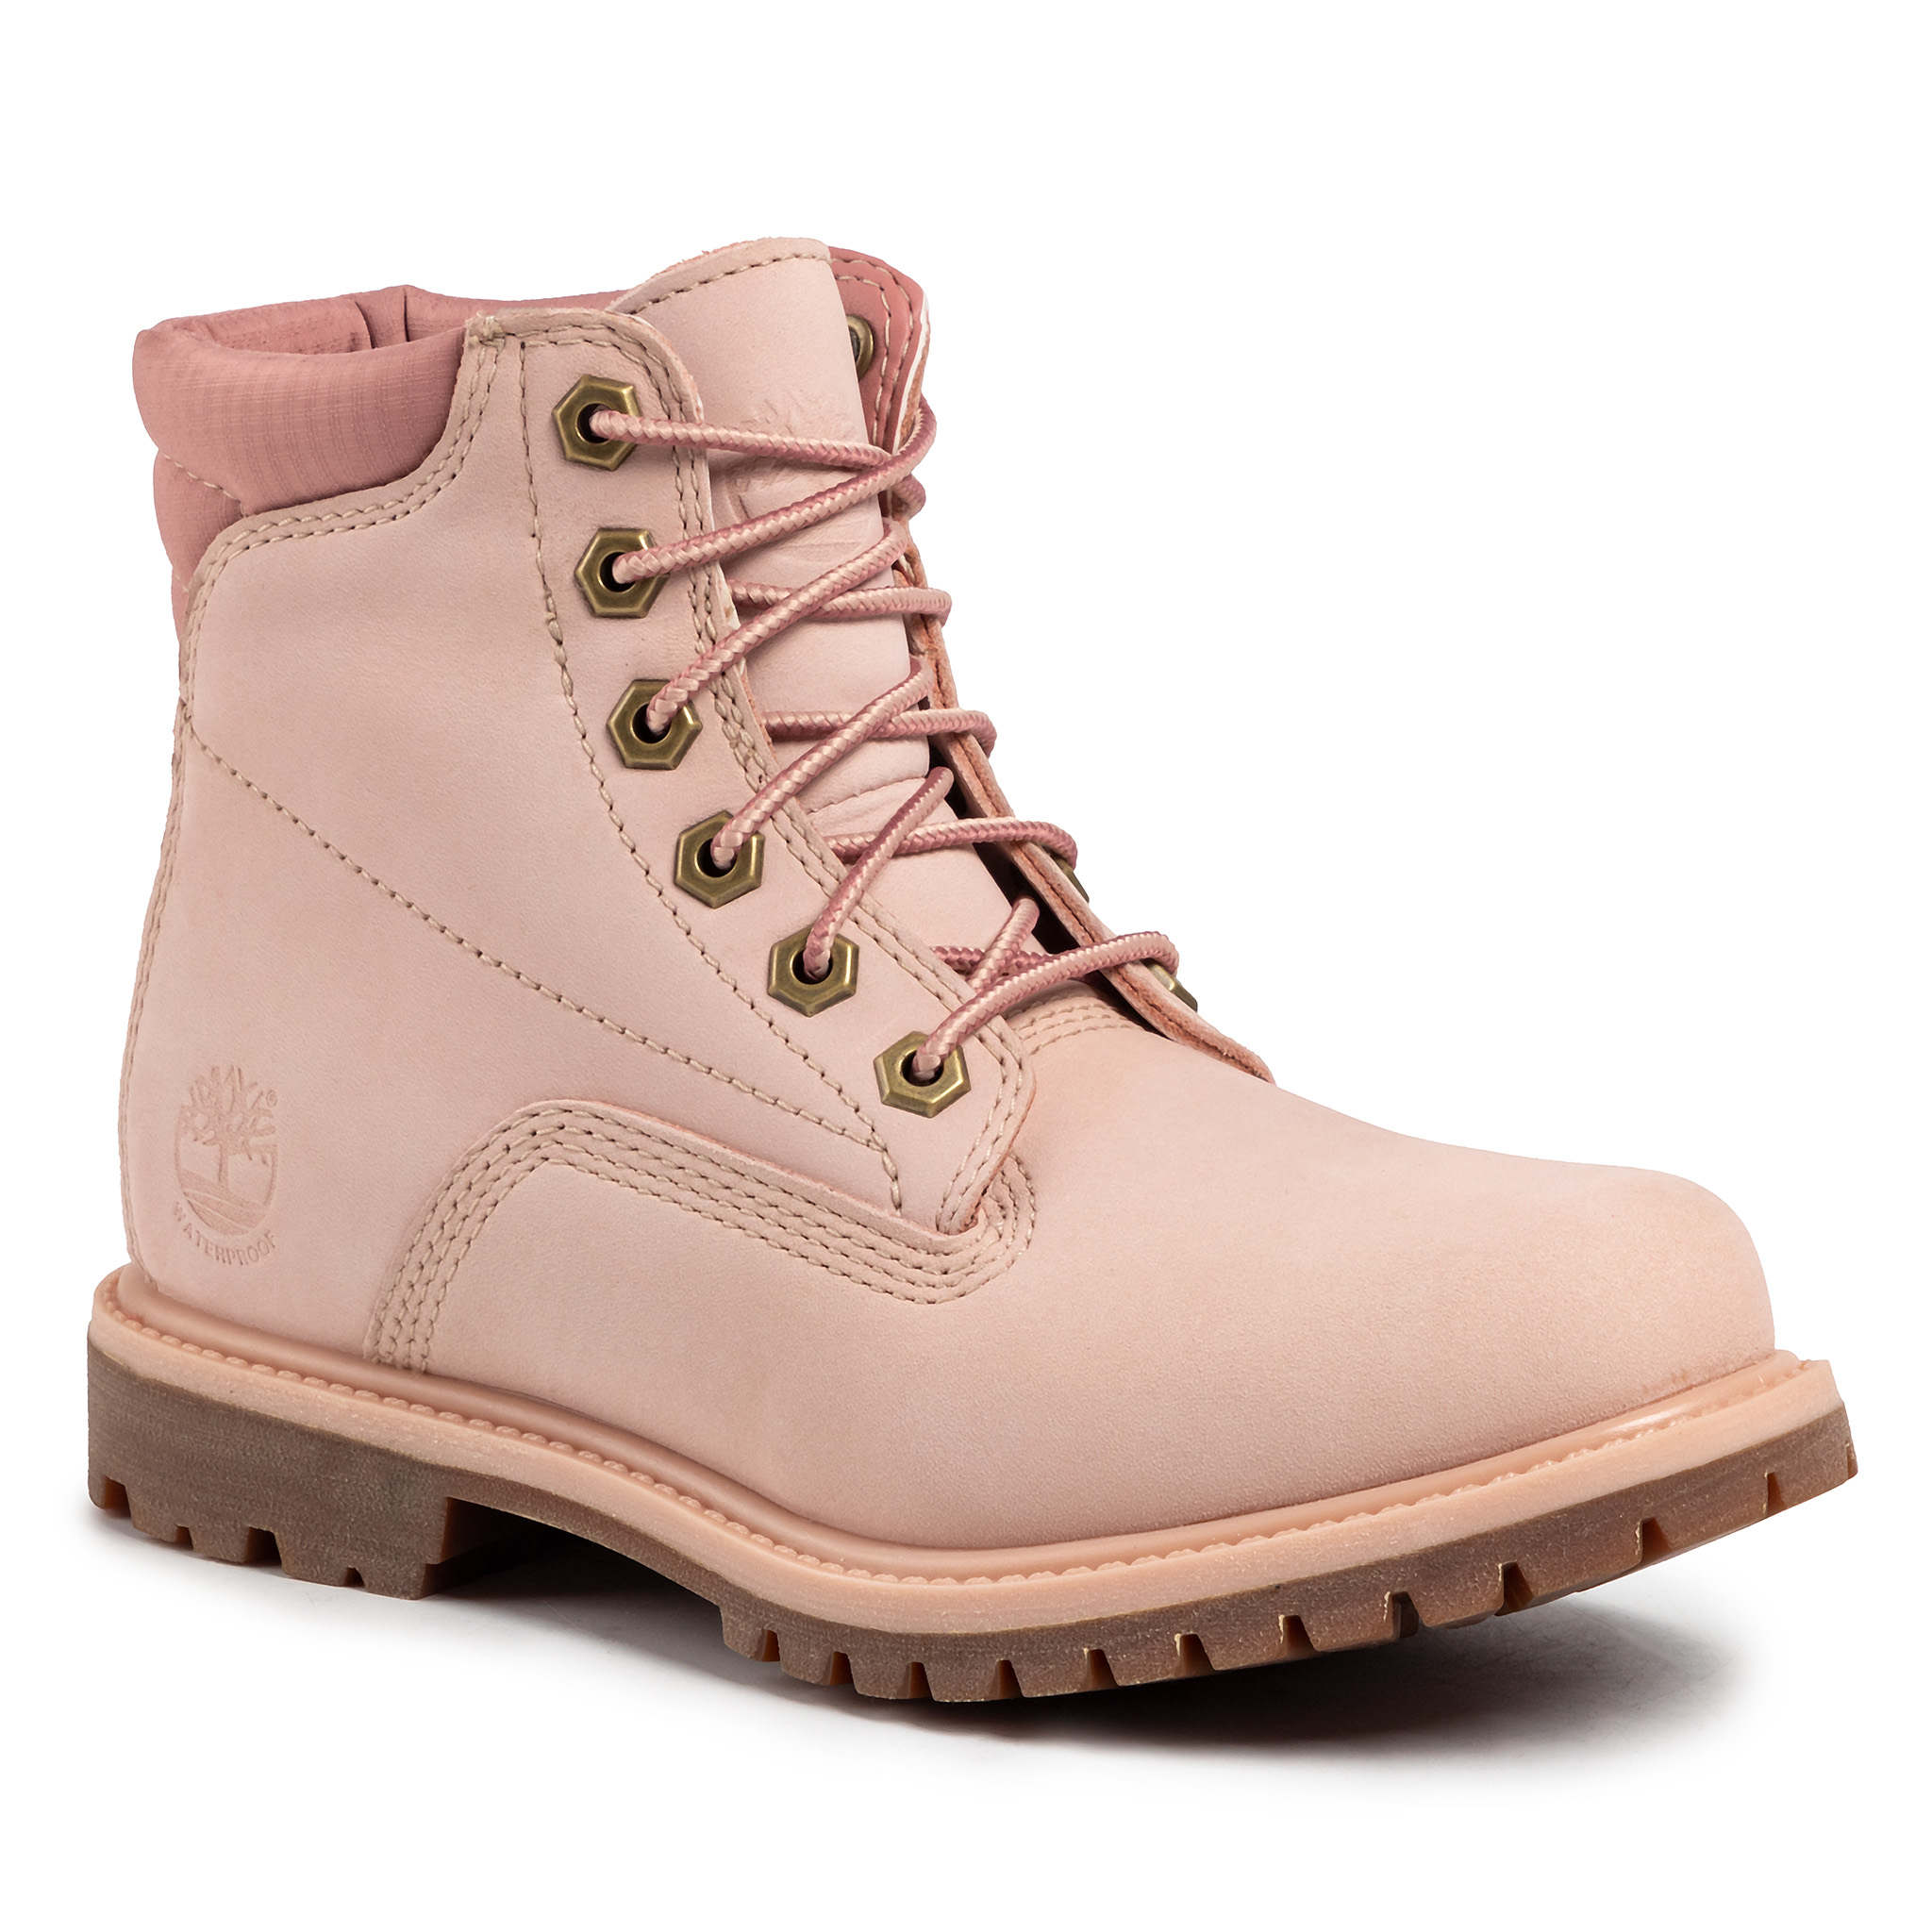 Trappers TIMBERLAND - Waterville 6 in Waterproof Boot TB0A1QT5662 Light Pink Nubuck